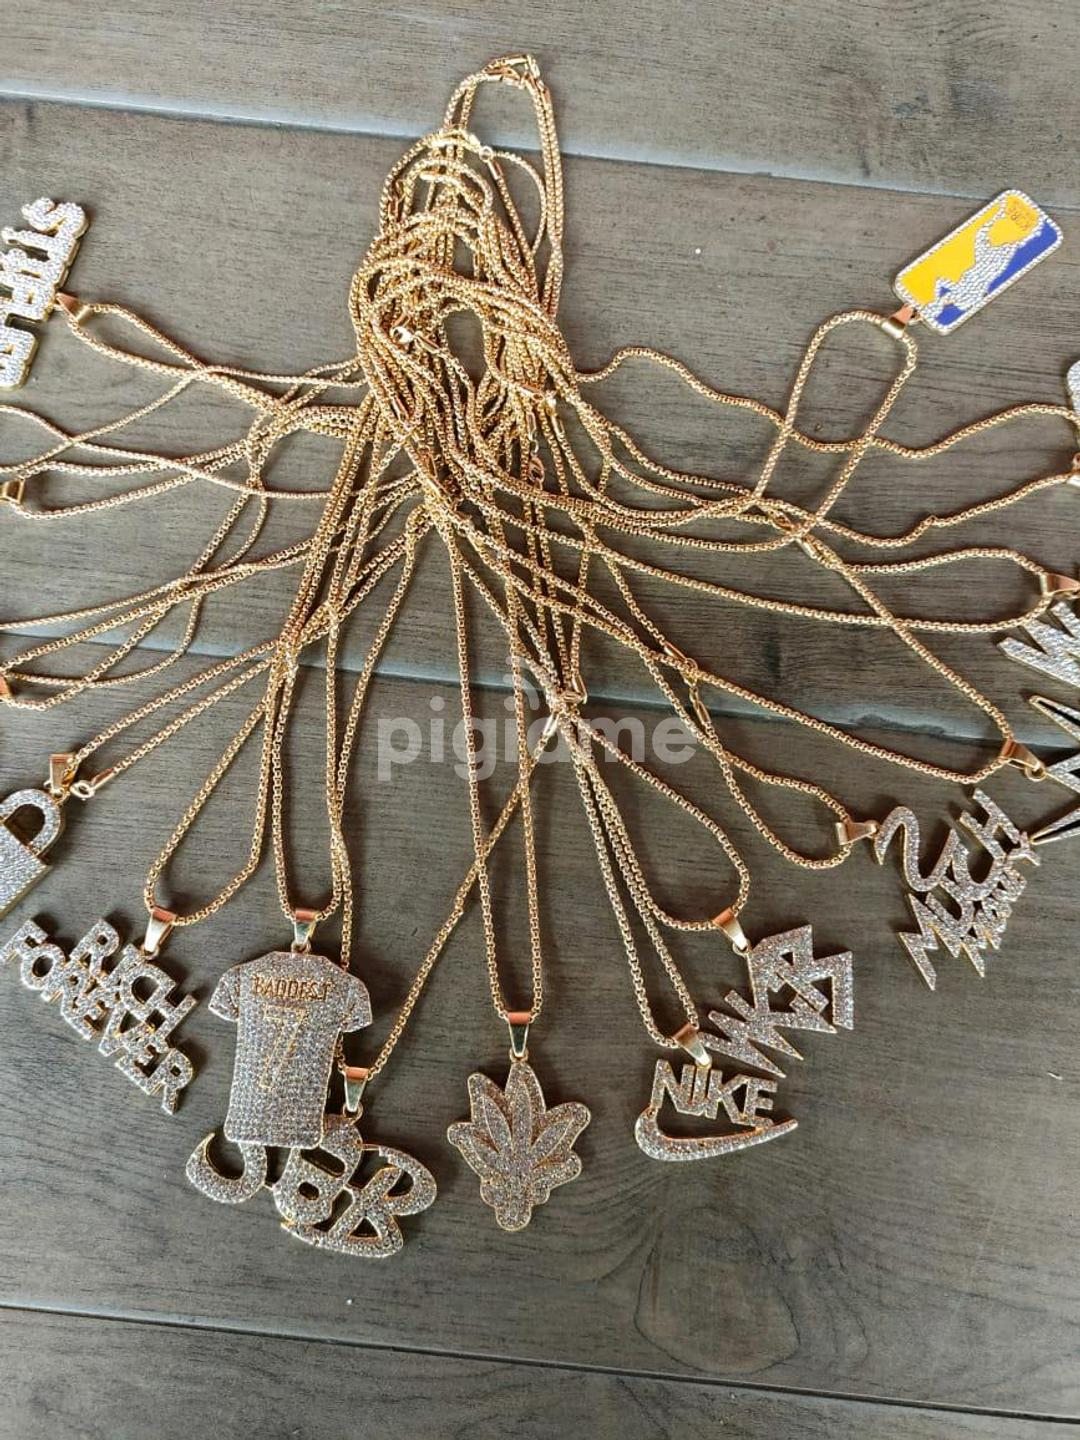 Iced Sling Chains With Pendant